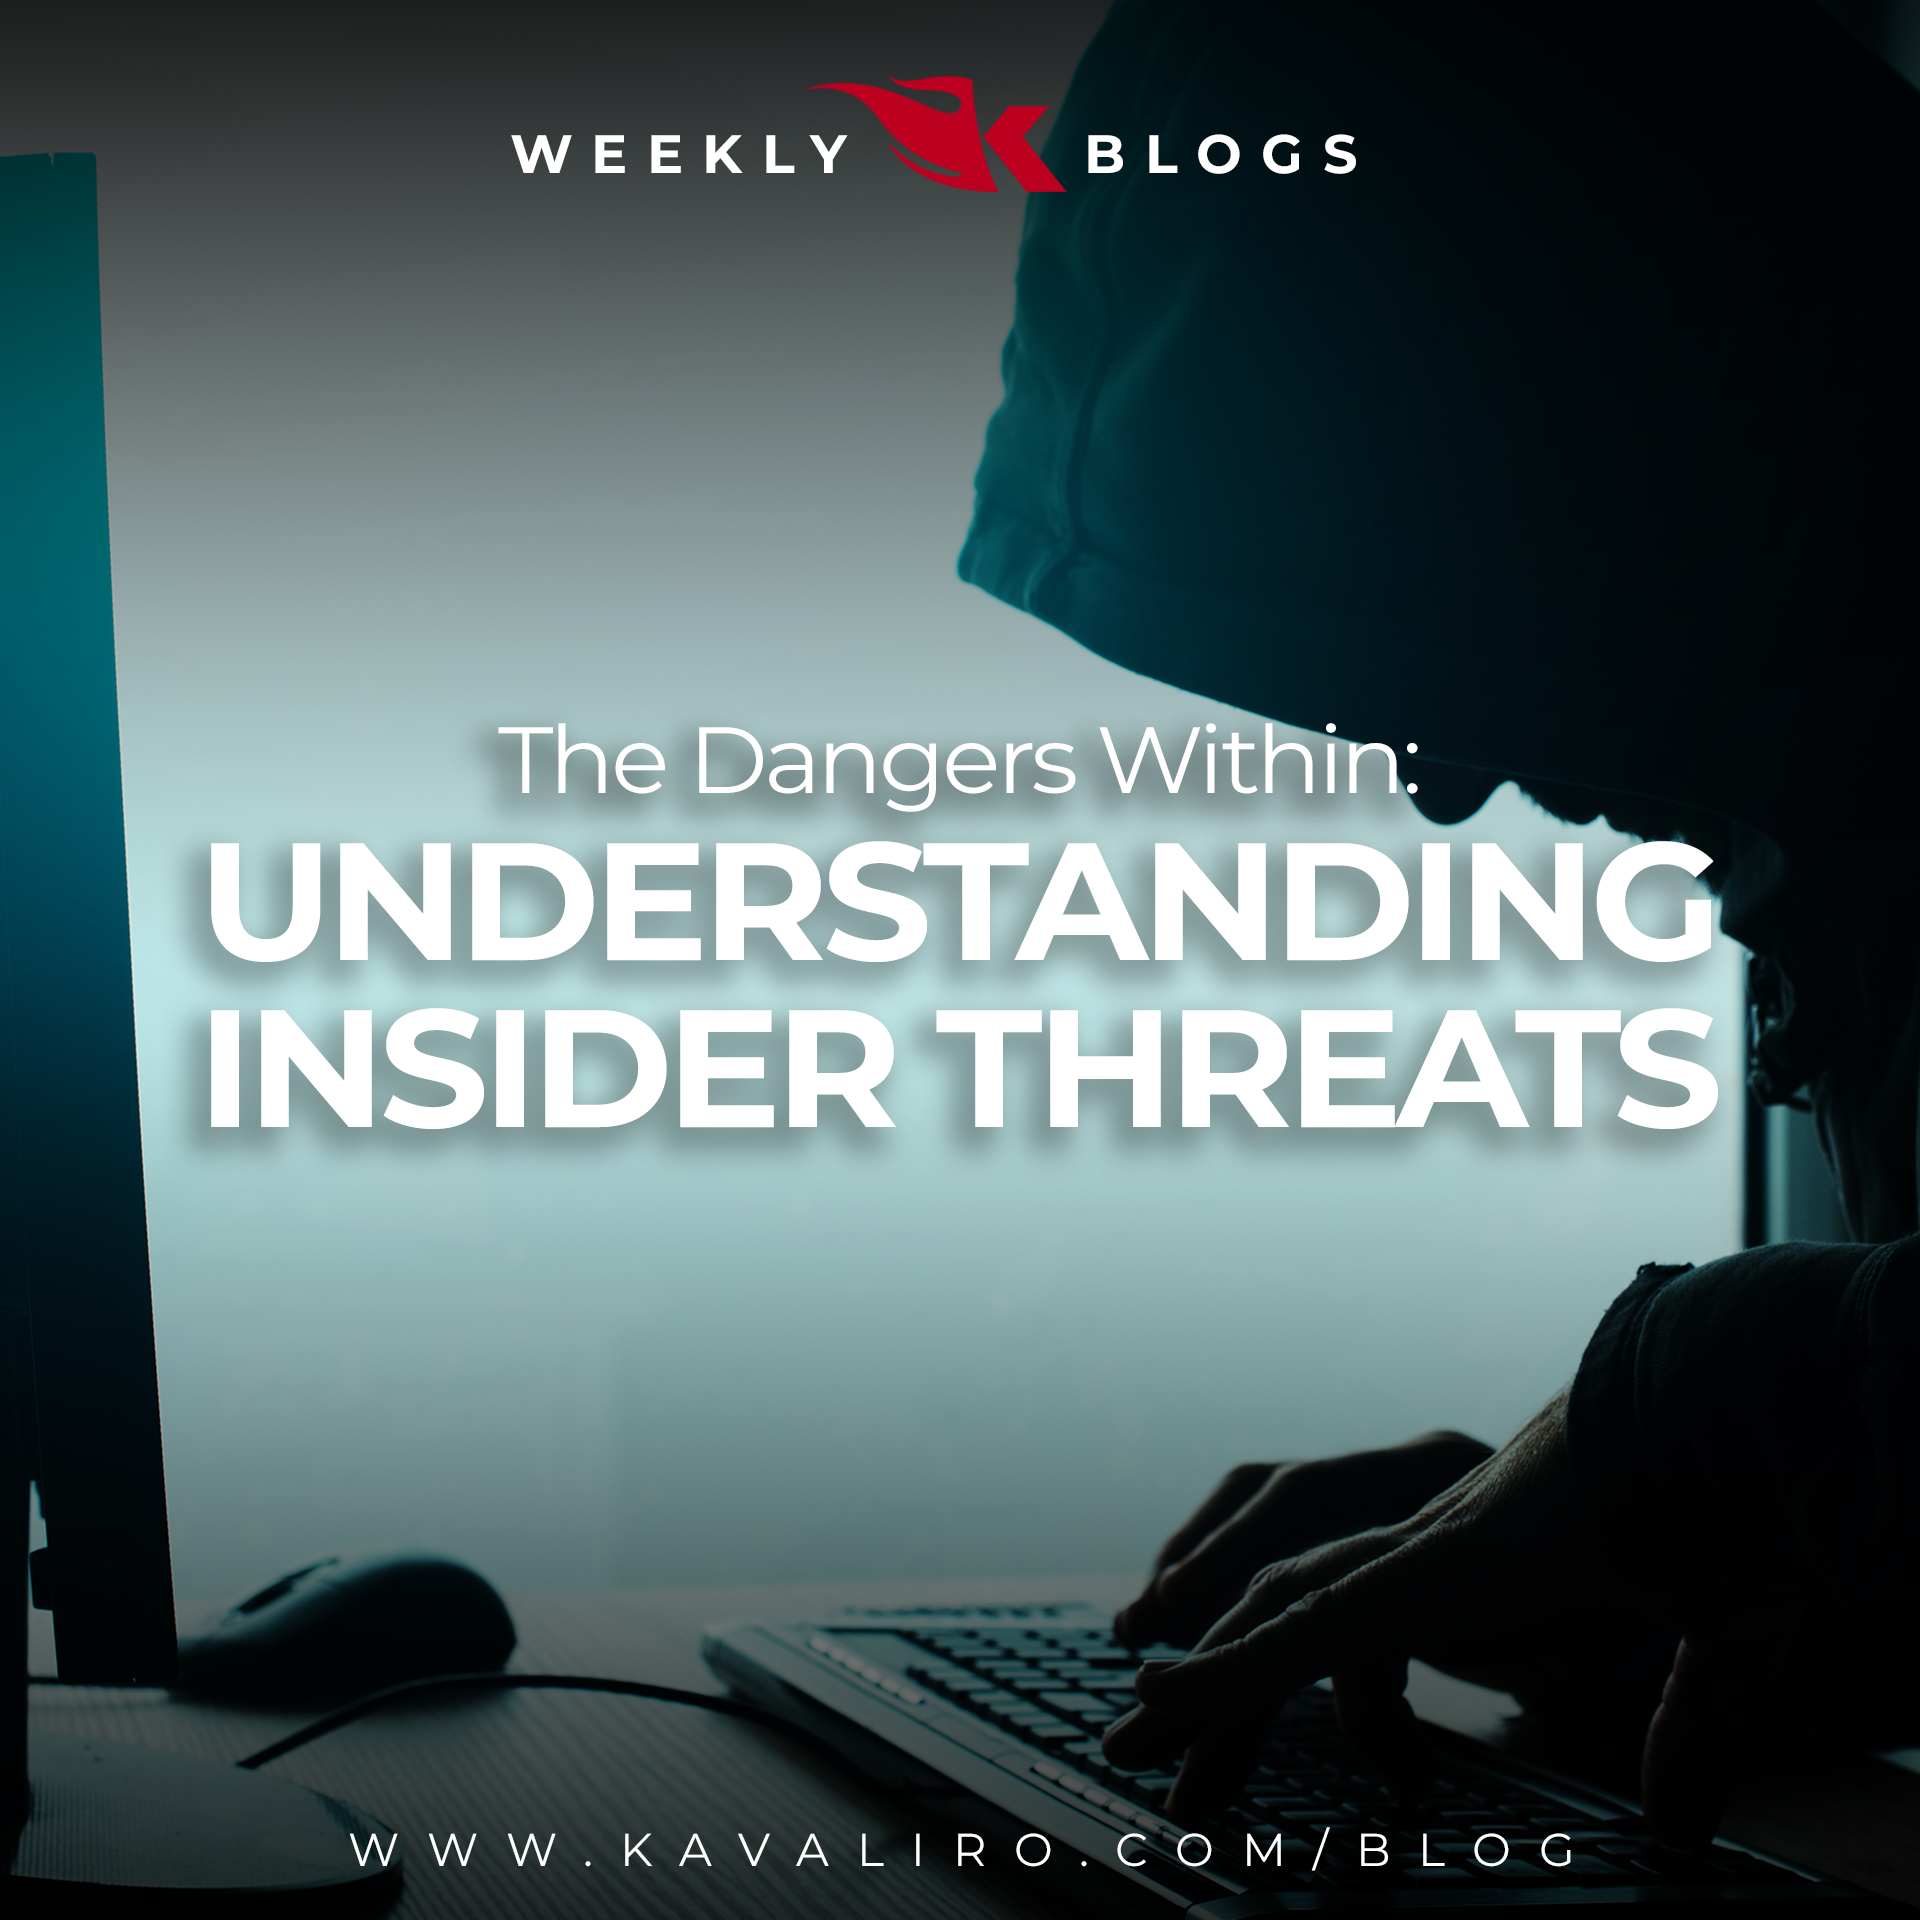 The Dangers Within: Understanding Insider Threats